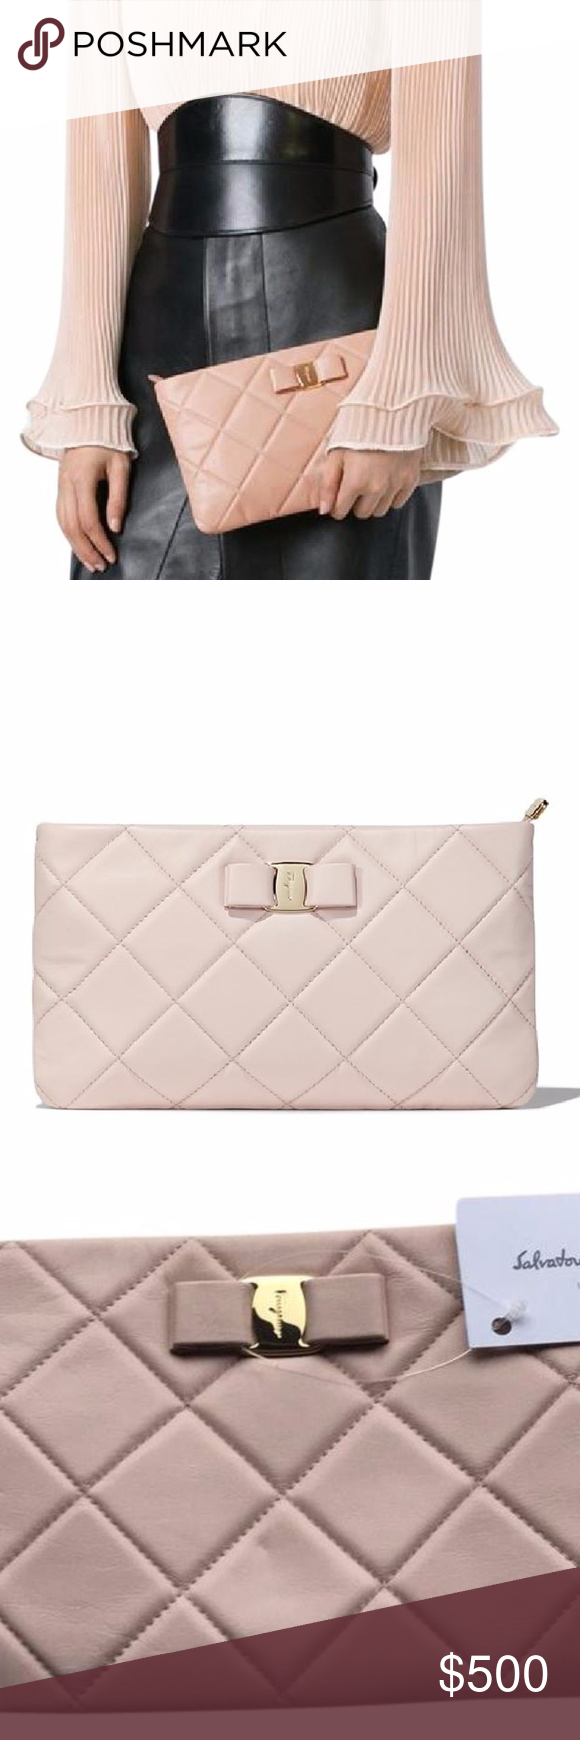 Salvatore Ferragamo Vara Quilted Leather CLUTCH New bisque nude powder pink  nappa leather  Vara adcc3884a2f04